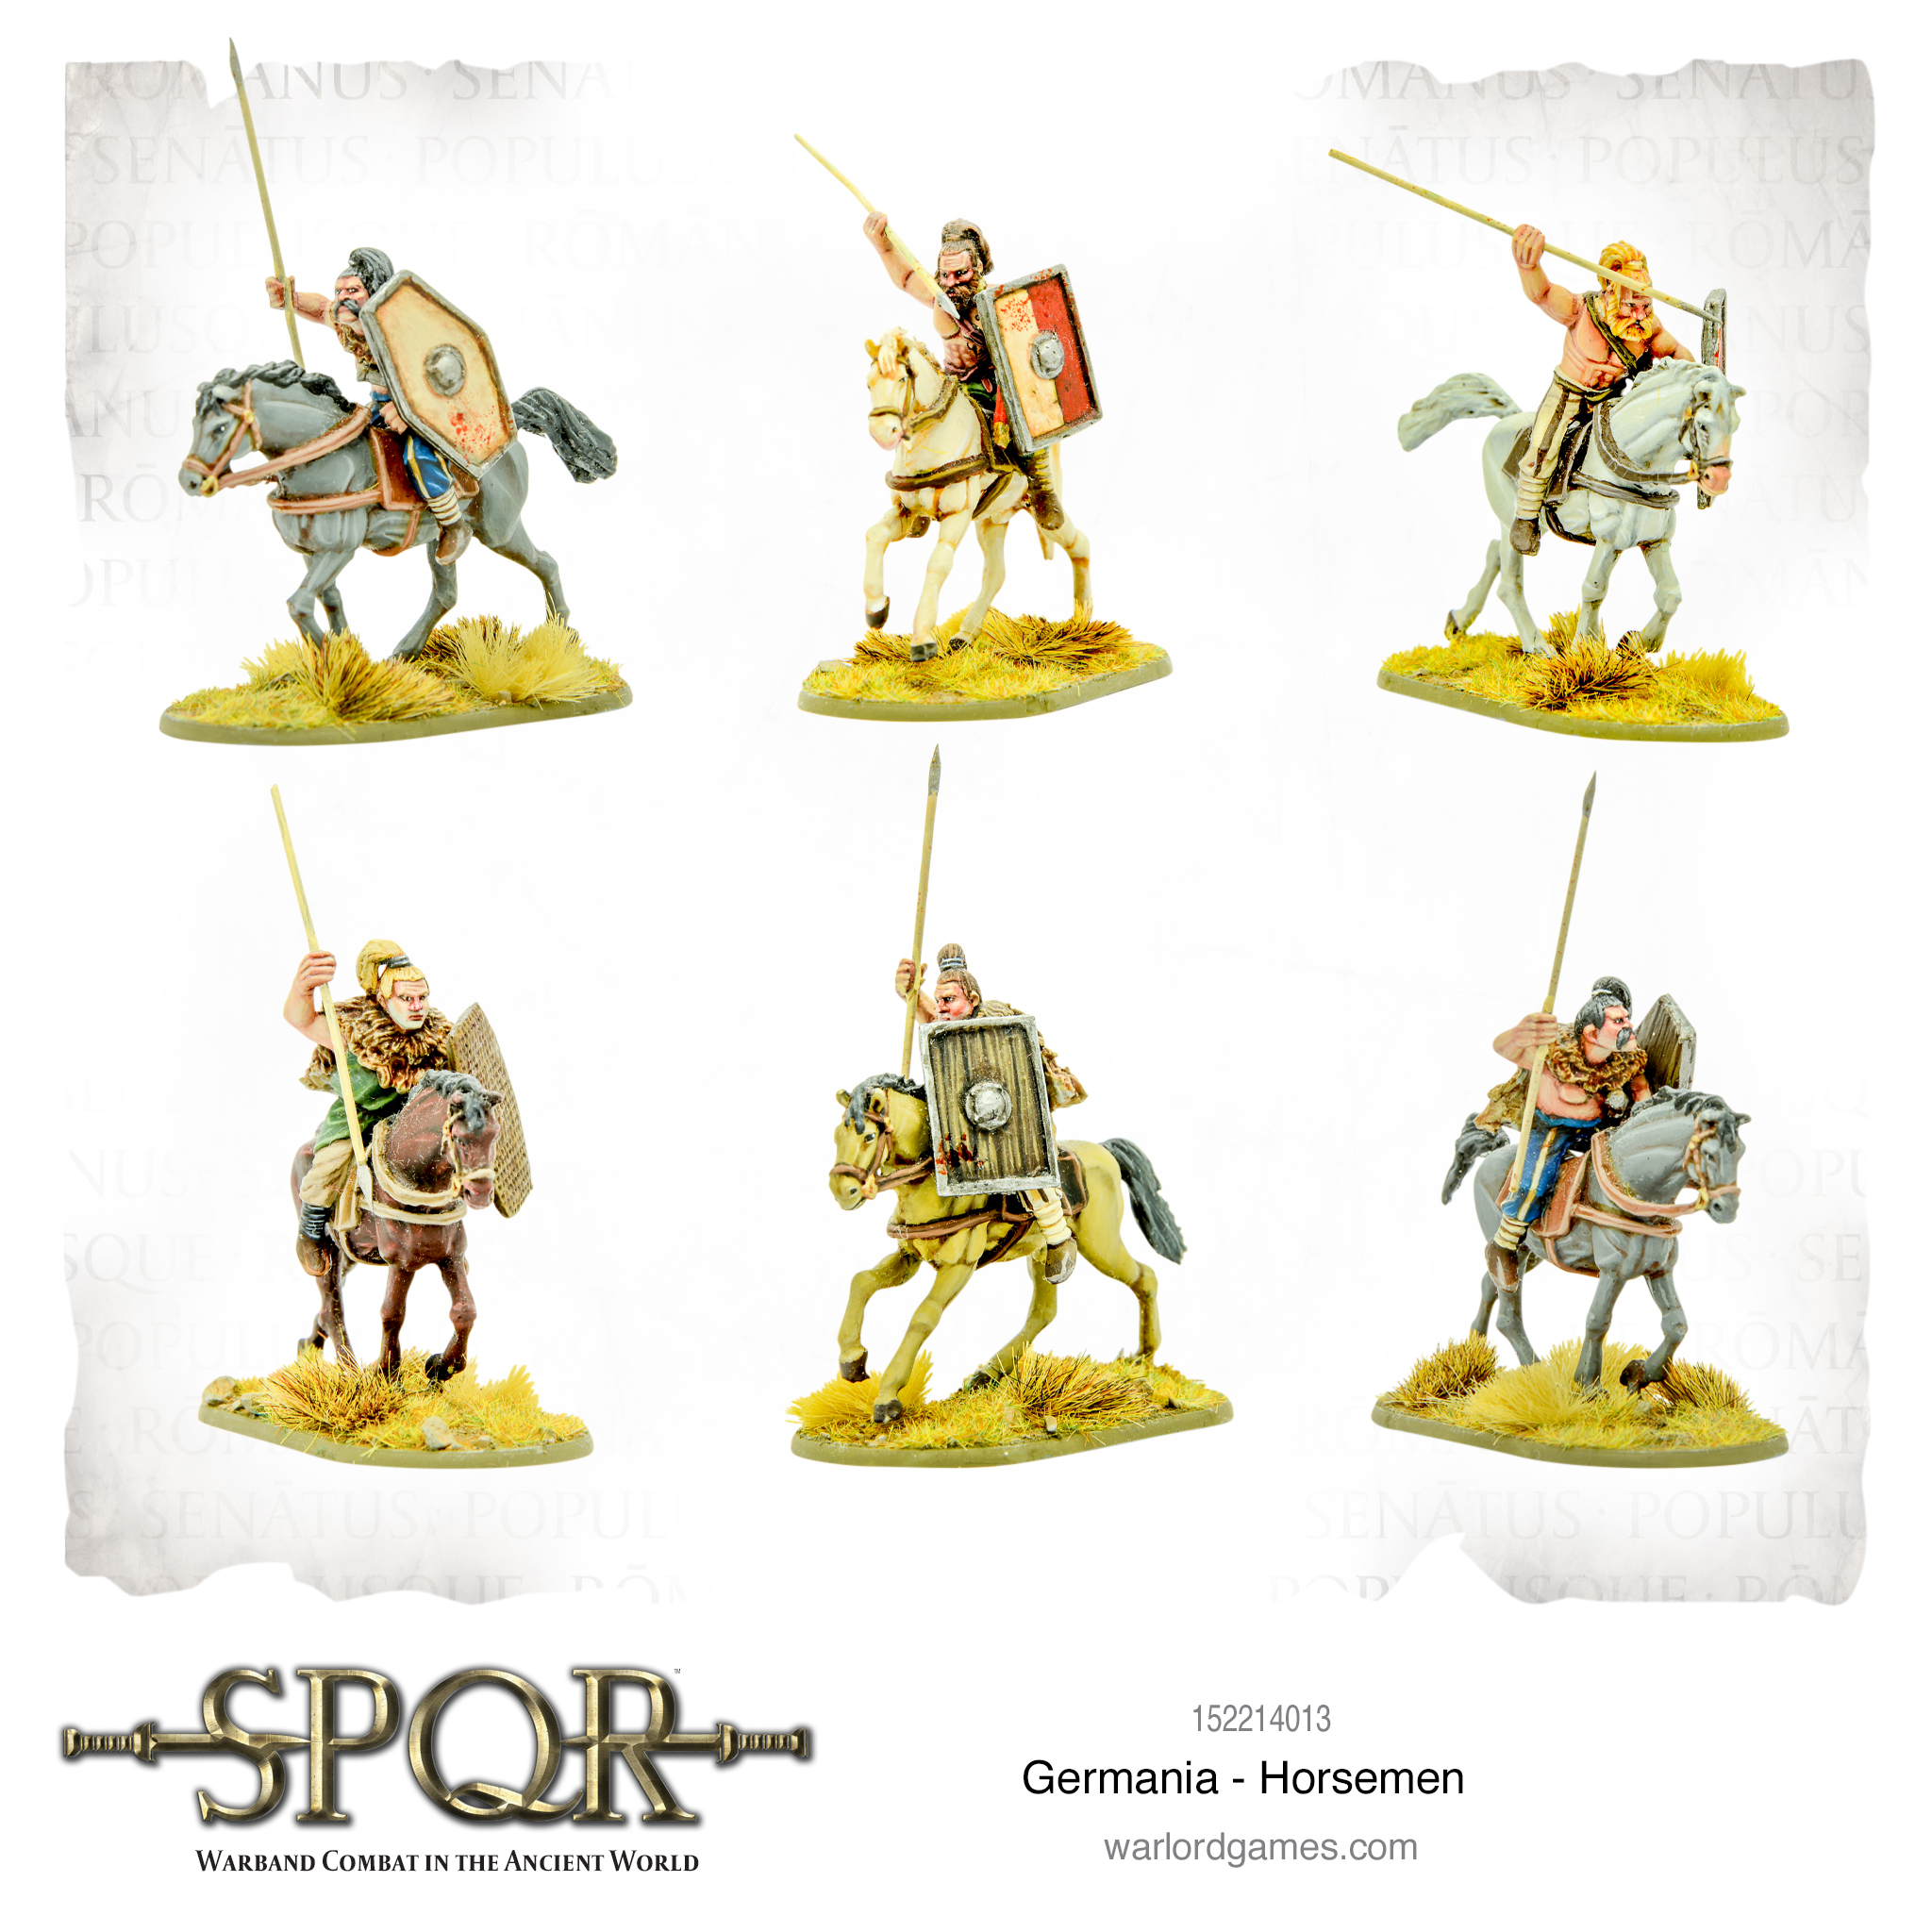 SPQR: Germania - Horsemen